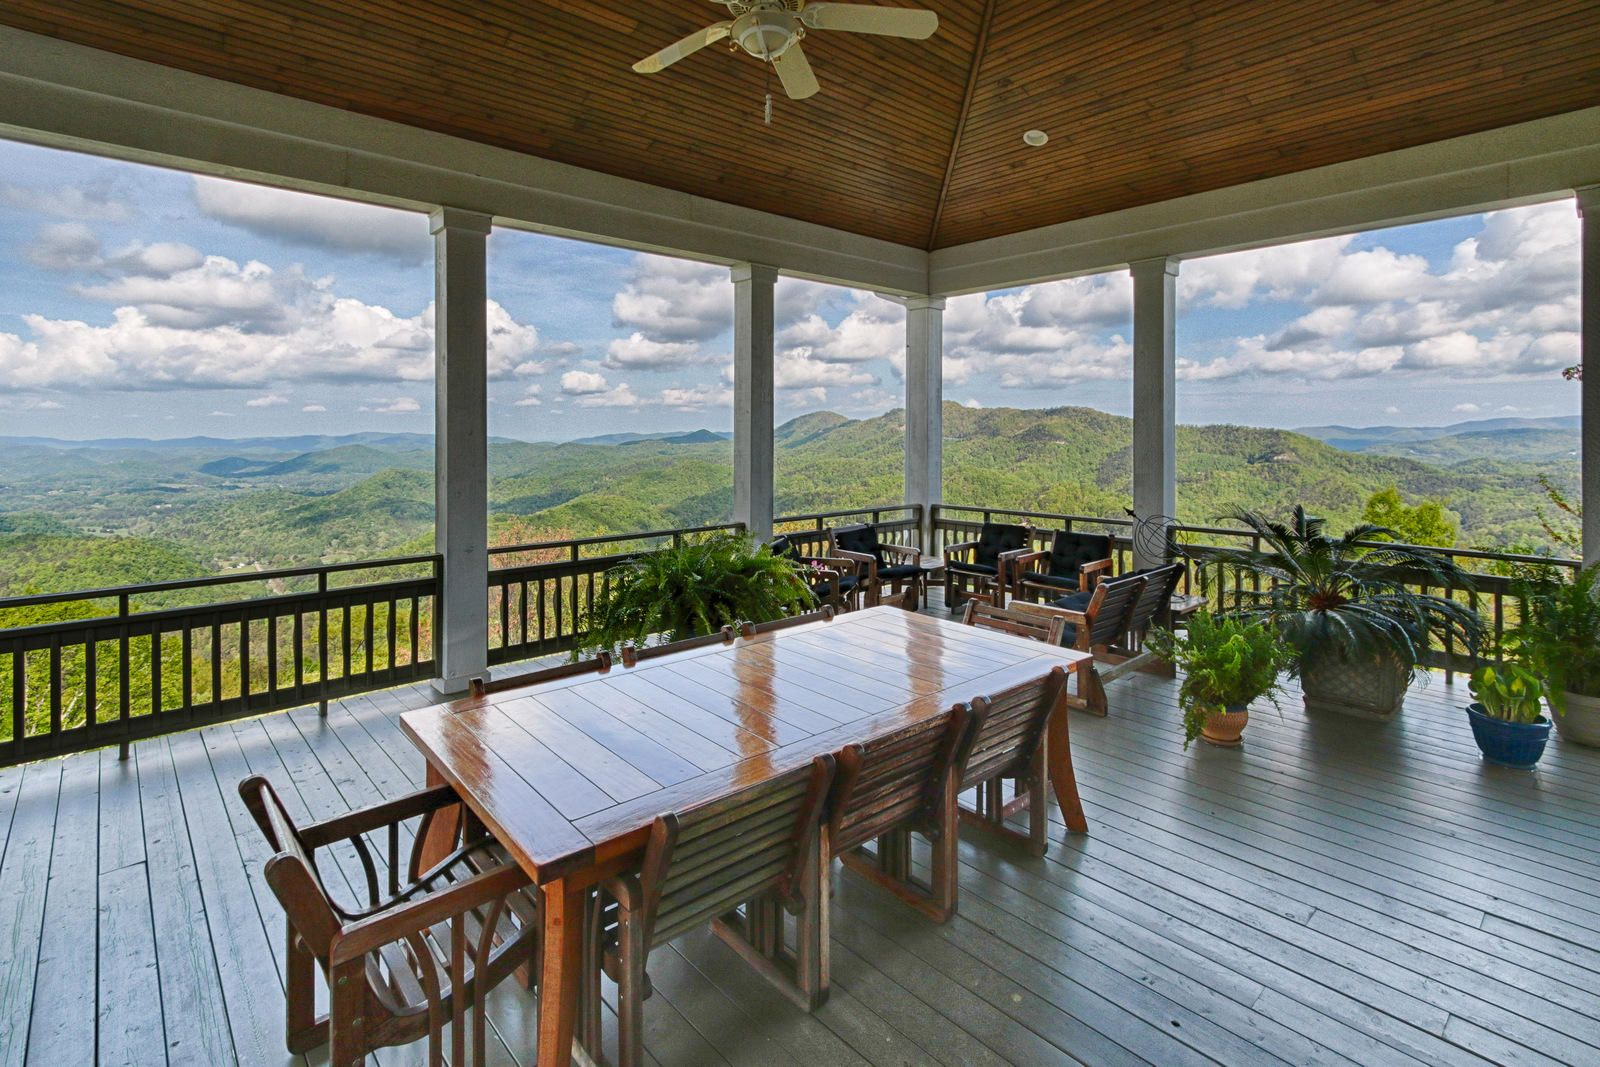 Dine Surrounded by Breathtaking Vistas